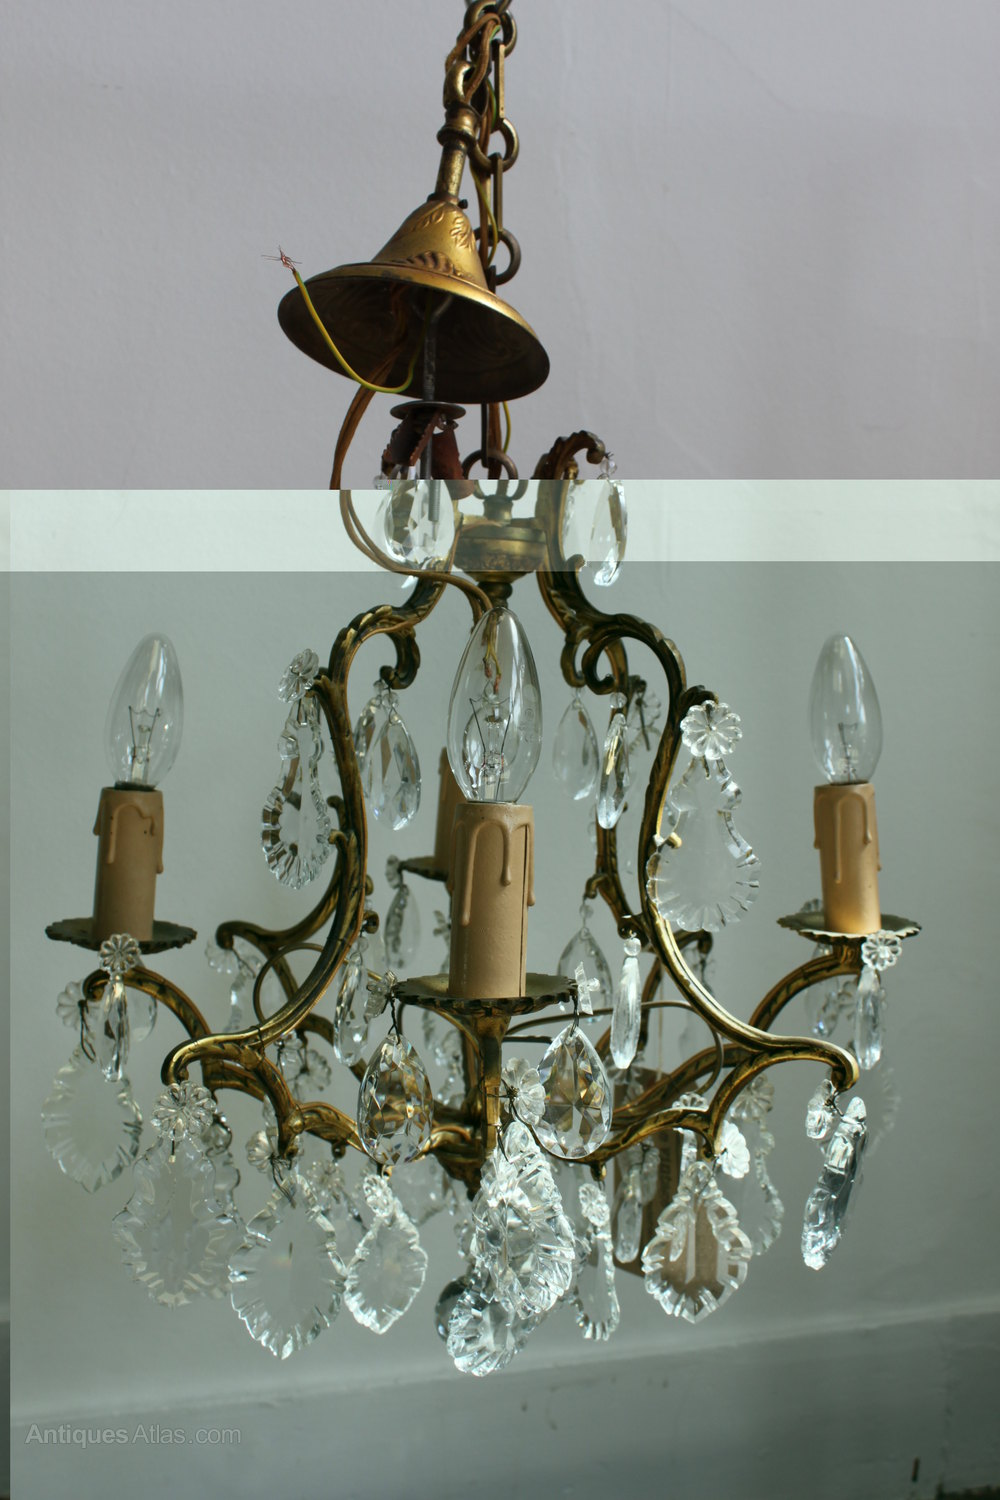 French Brass Chandelier Antique Lighting, Antique French Chandeliers ... - Antiques Atlas - French Brass Chandelier